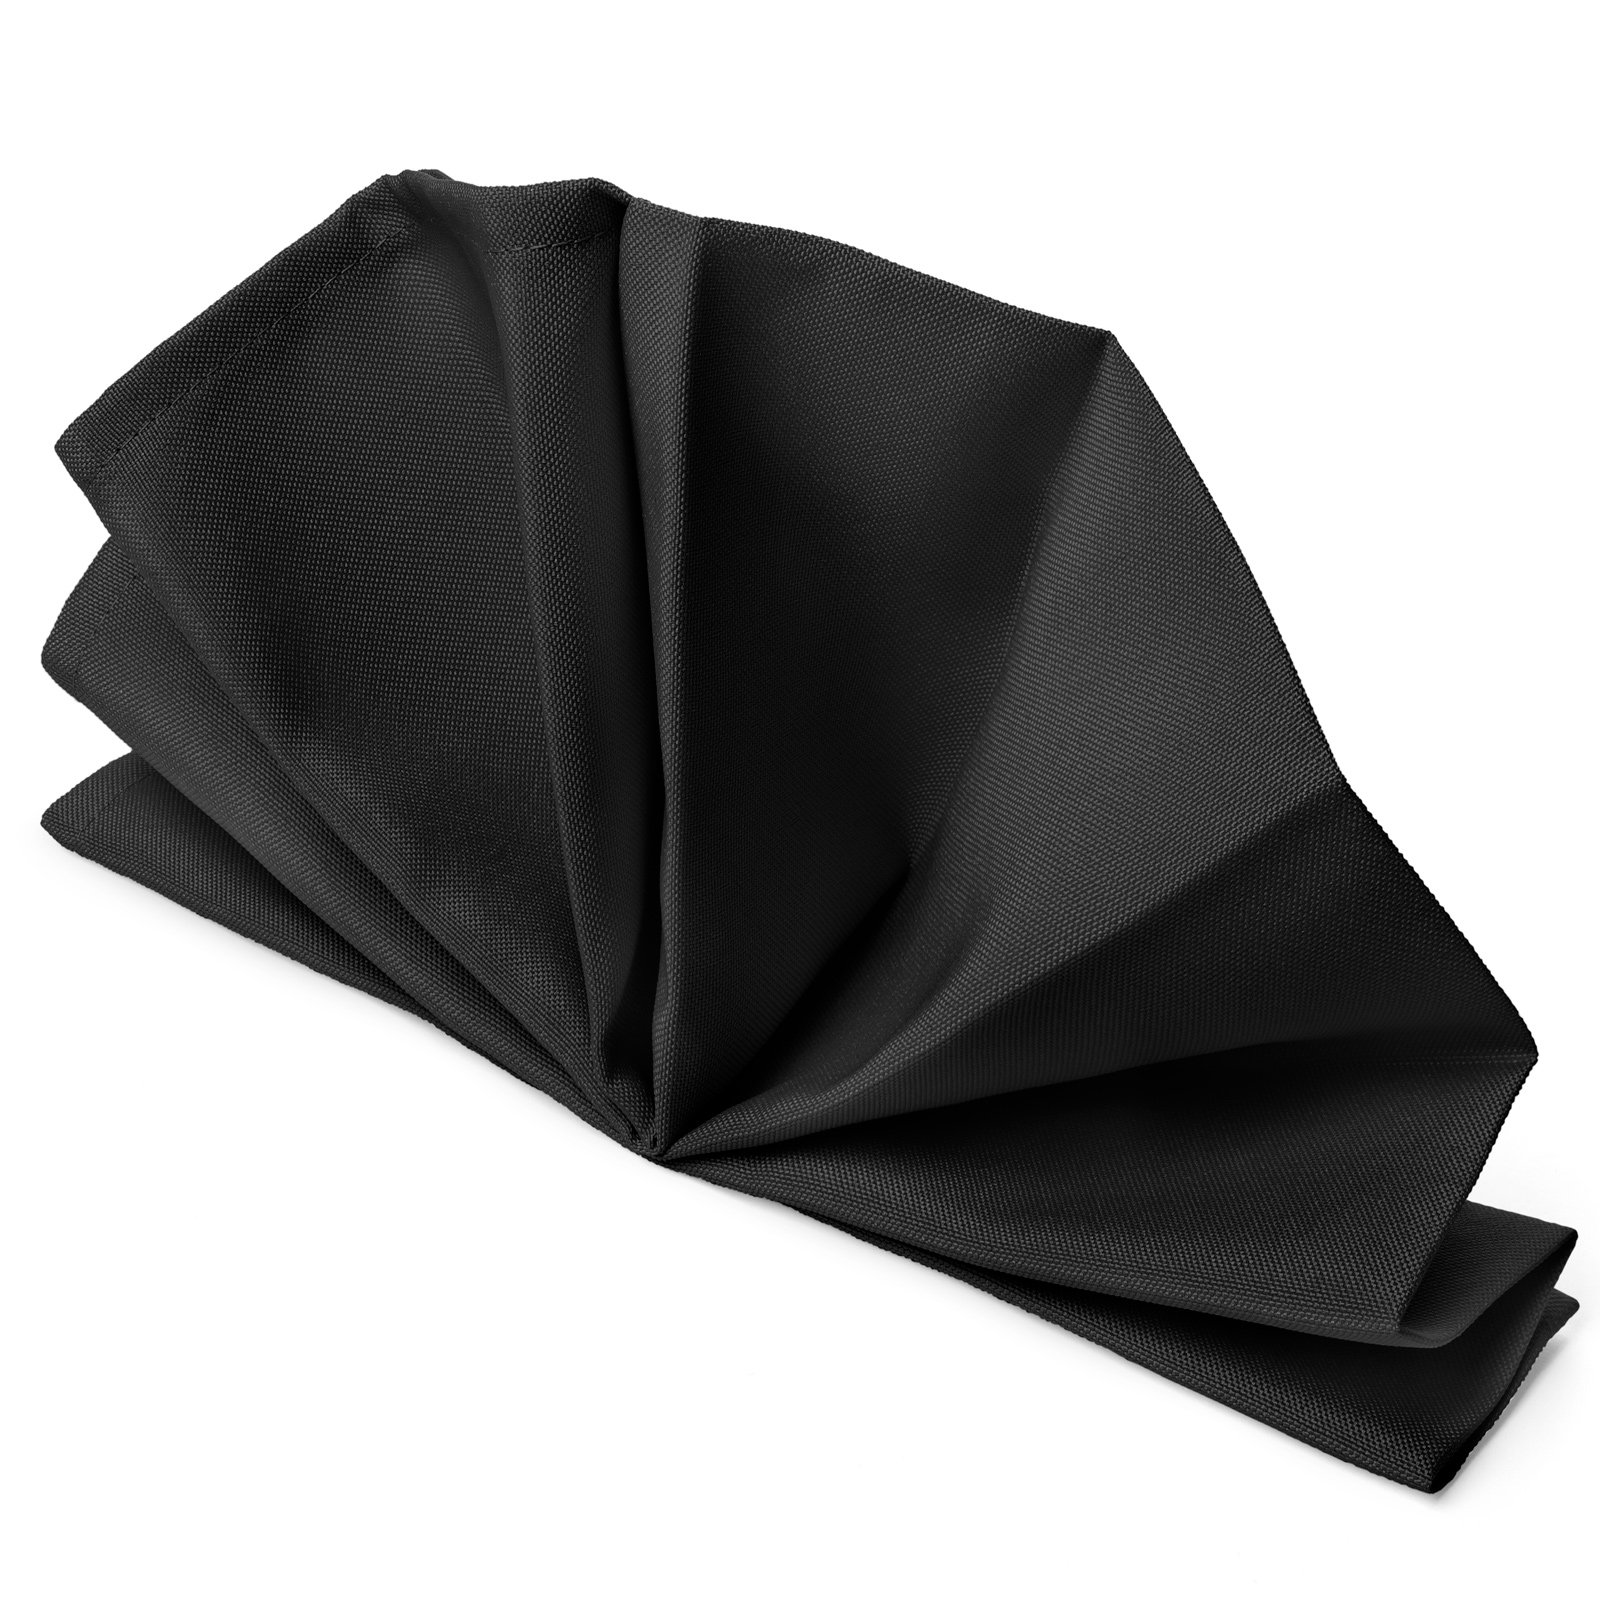 Mill & Thread - 1 Dozen 20'' Oversized Cloth Dinner Table Napkins - Machine Washable Restaurant/Wedding/Hotel Quality Polyester Fabric - Black